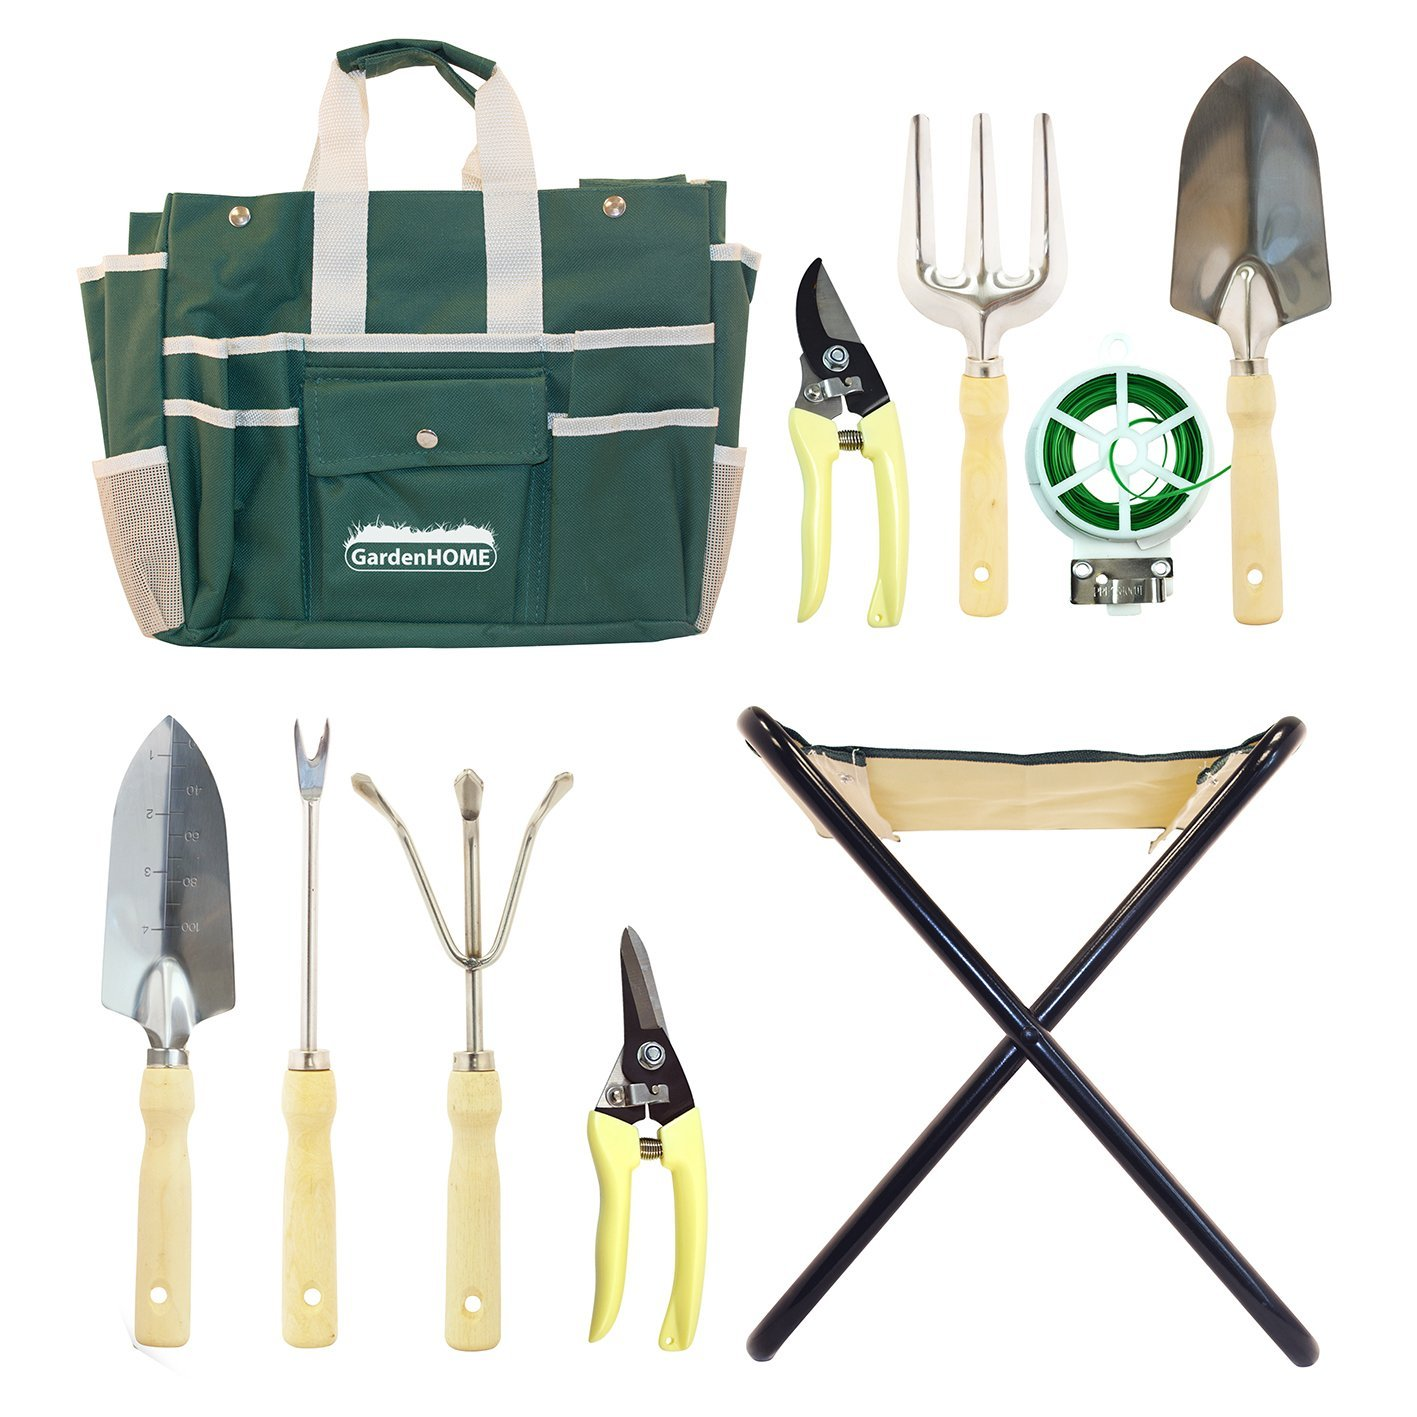 GardenHOME 10 Piece Garden Tool Set with Folding Stool and Heavy Duty Steel Tools included 2 pruning shears and a 20-meter plant twist tie are added